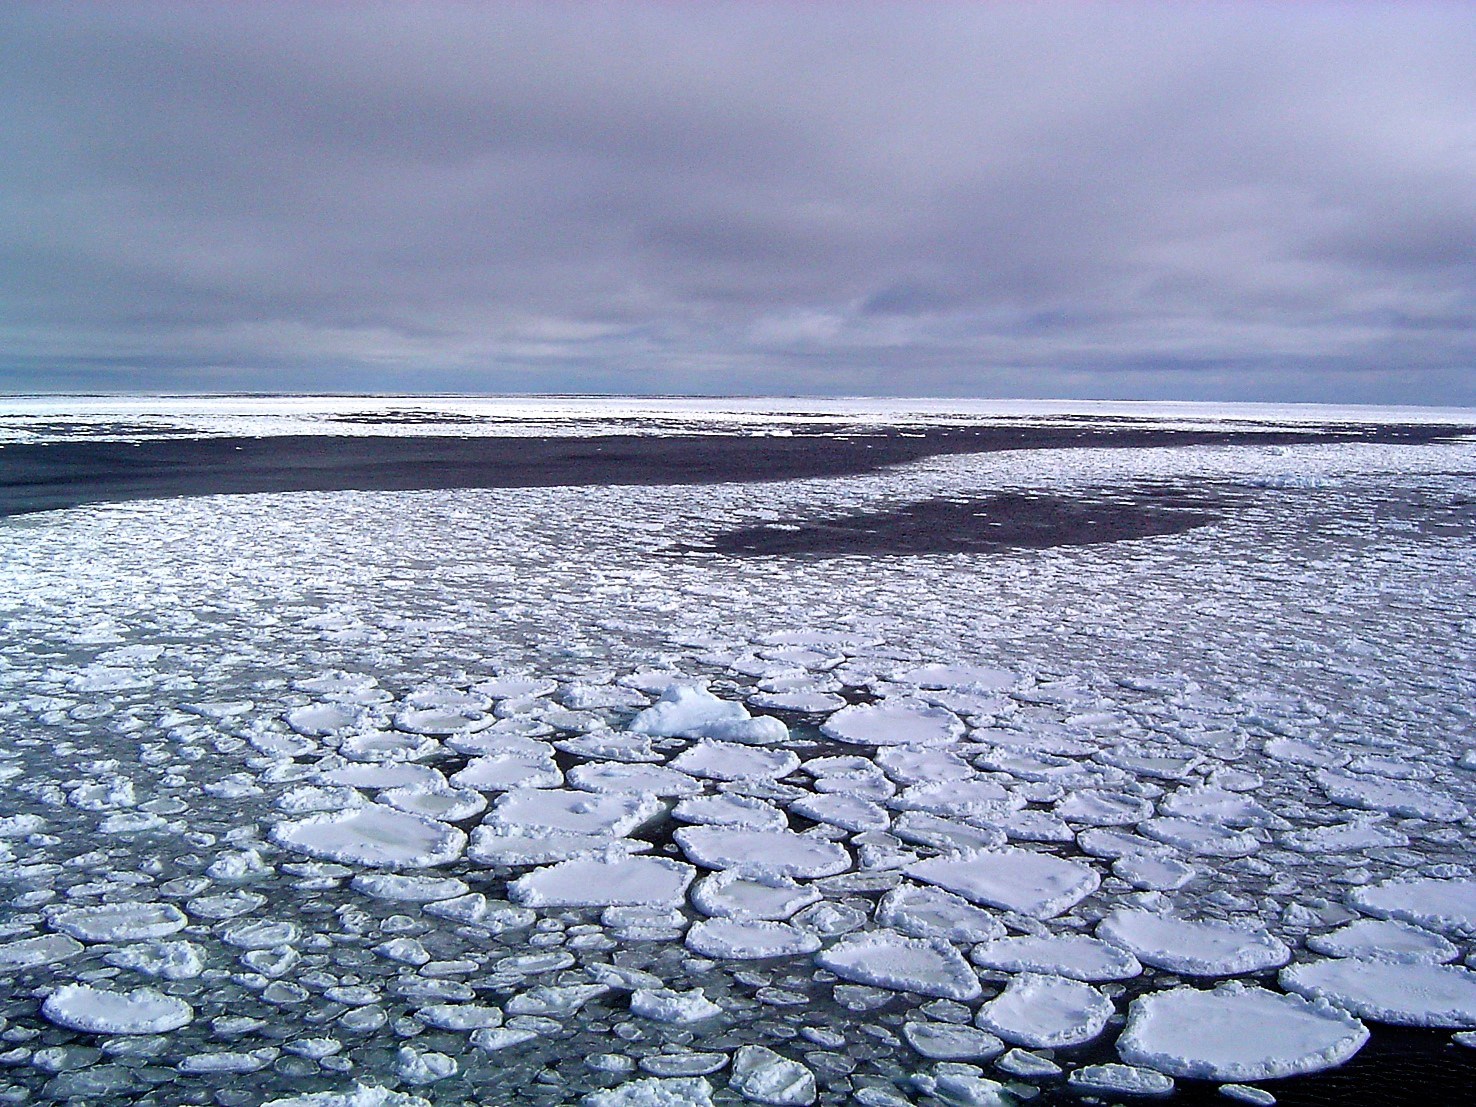 """Sea ice can take on a variety of textures. When waves buffet the freezing ocean surface, characteristic """"pancake"""" sea ice forms. This sea ice was photographed near Antarctica. Credit: Ted Scambos, NSIDC"""